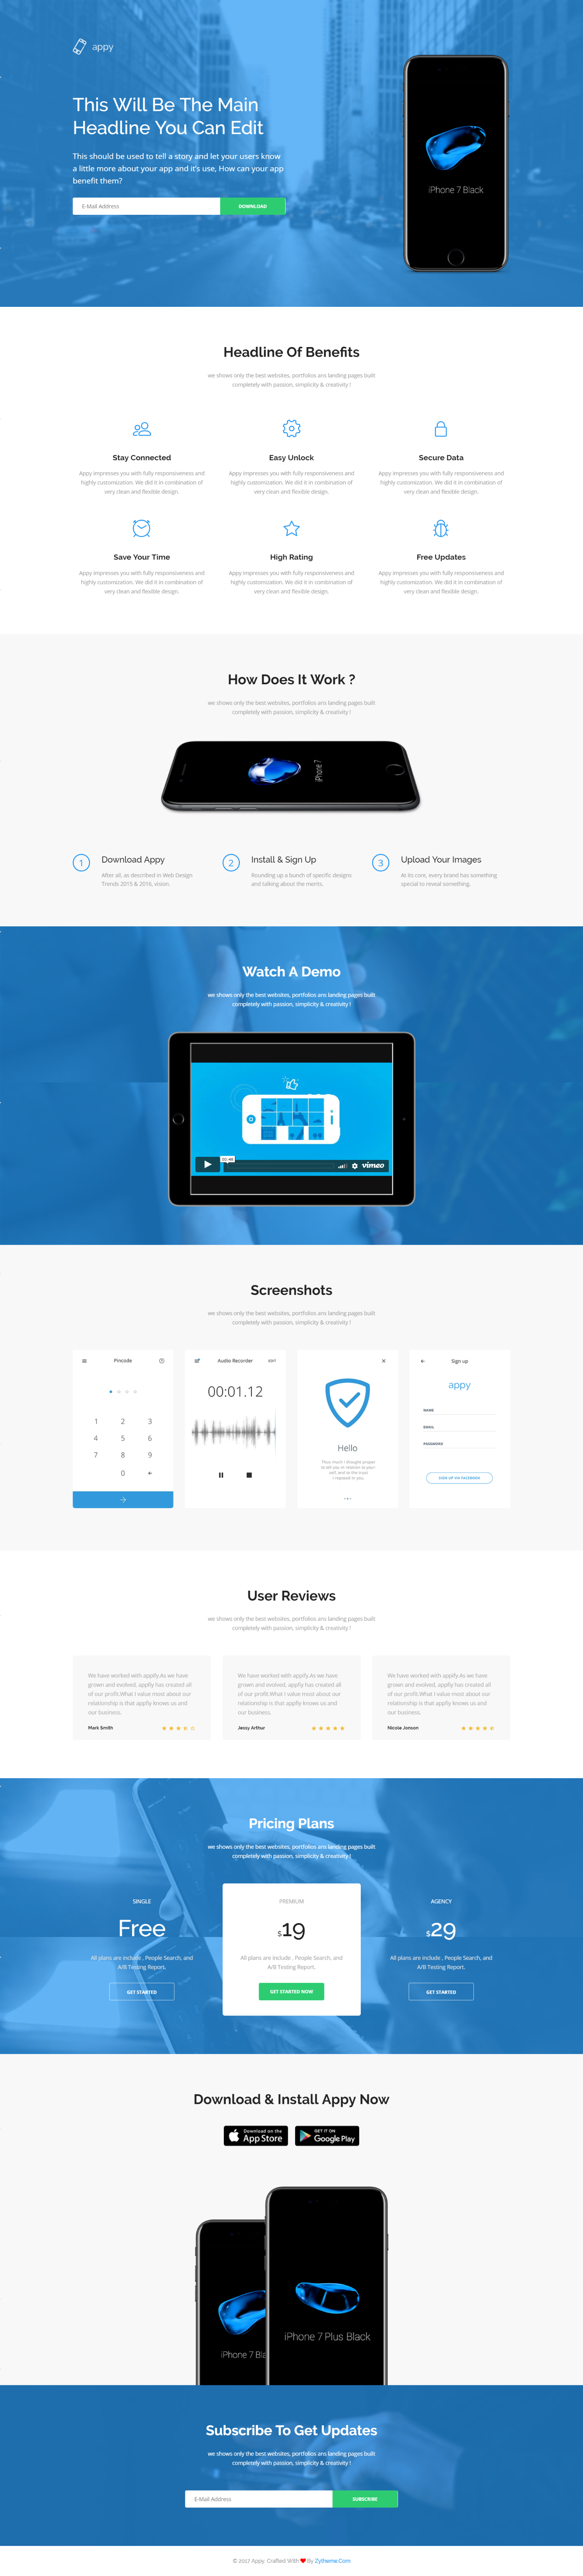 Appy App Landing Page Html Template By Zytheme On Envato Elements Landing Page Html Landing Page Html Templates